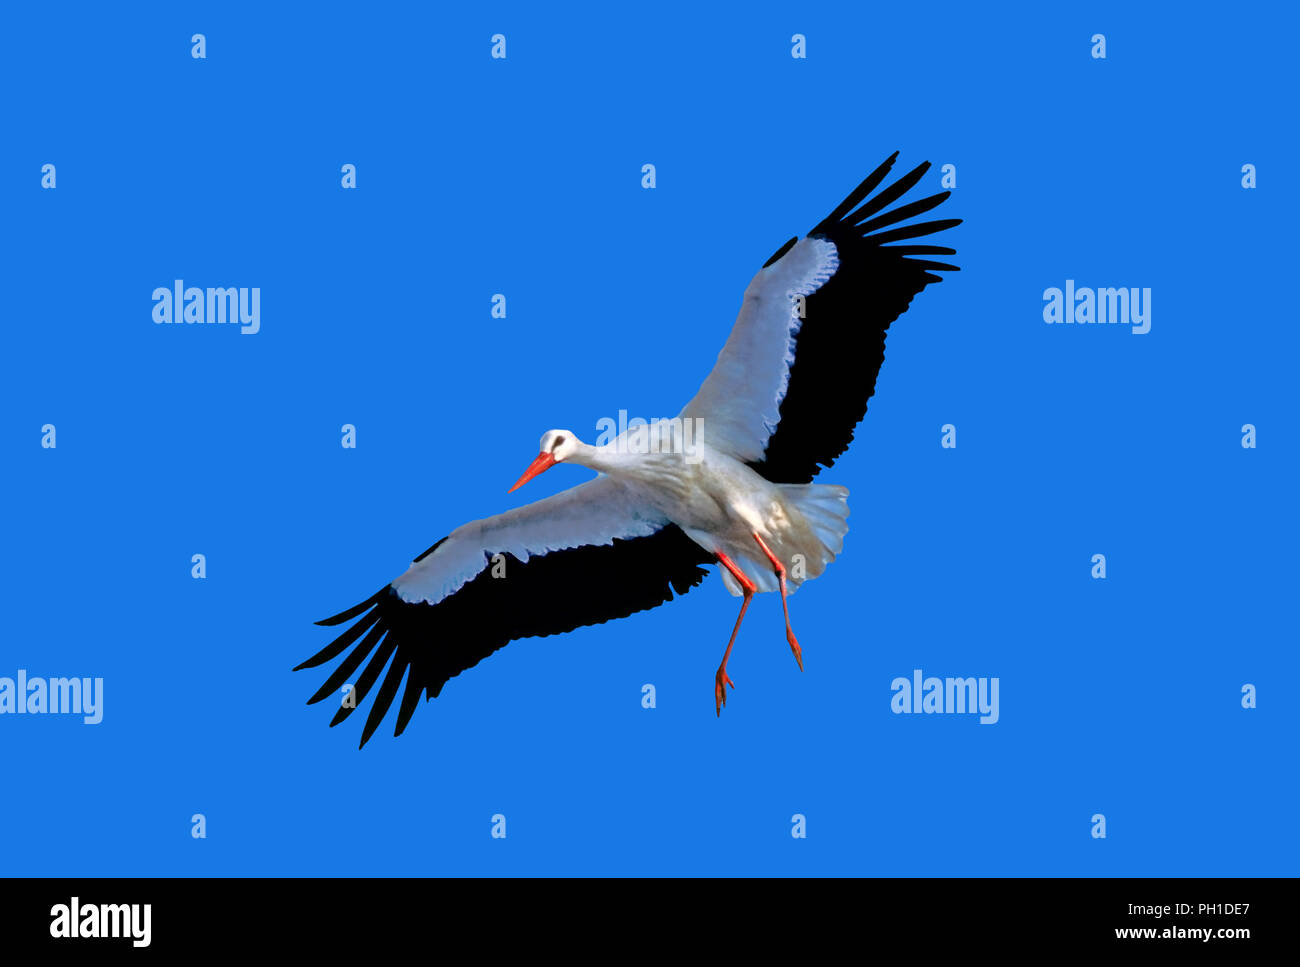 White stork (Ciconia ciconia) in flight. Southern Spain. Europe - Stock Image